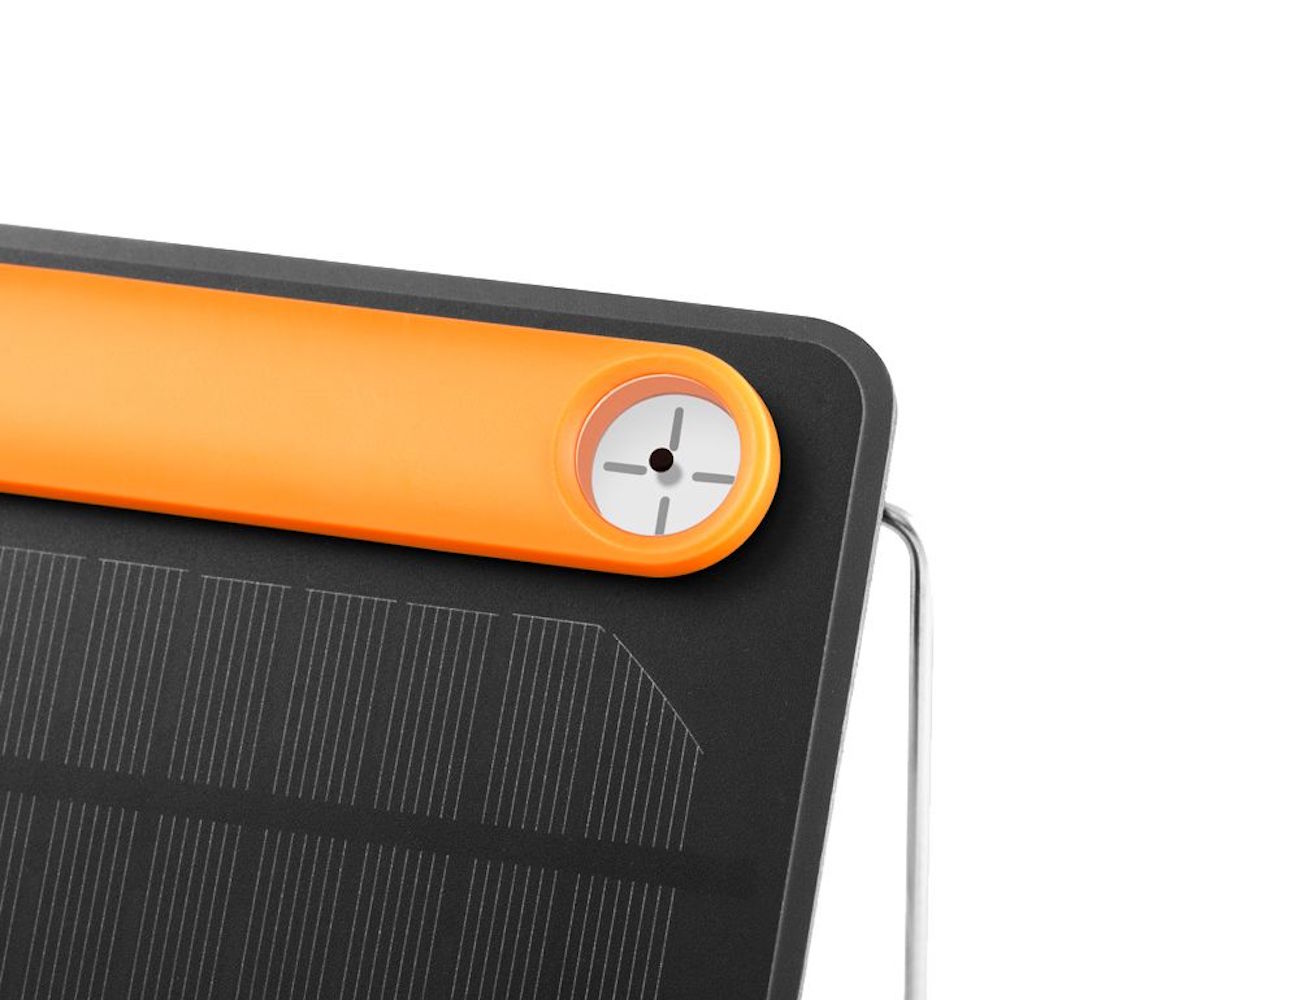 powerlite-solar-kit-by-biolite-04